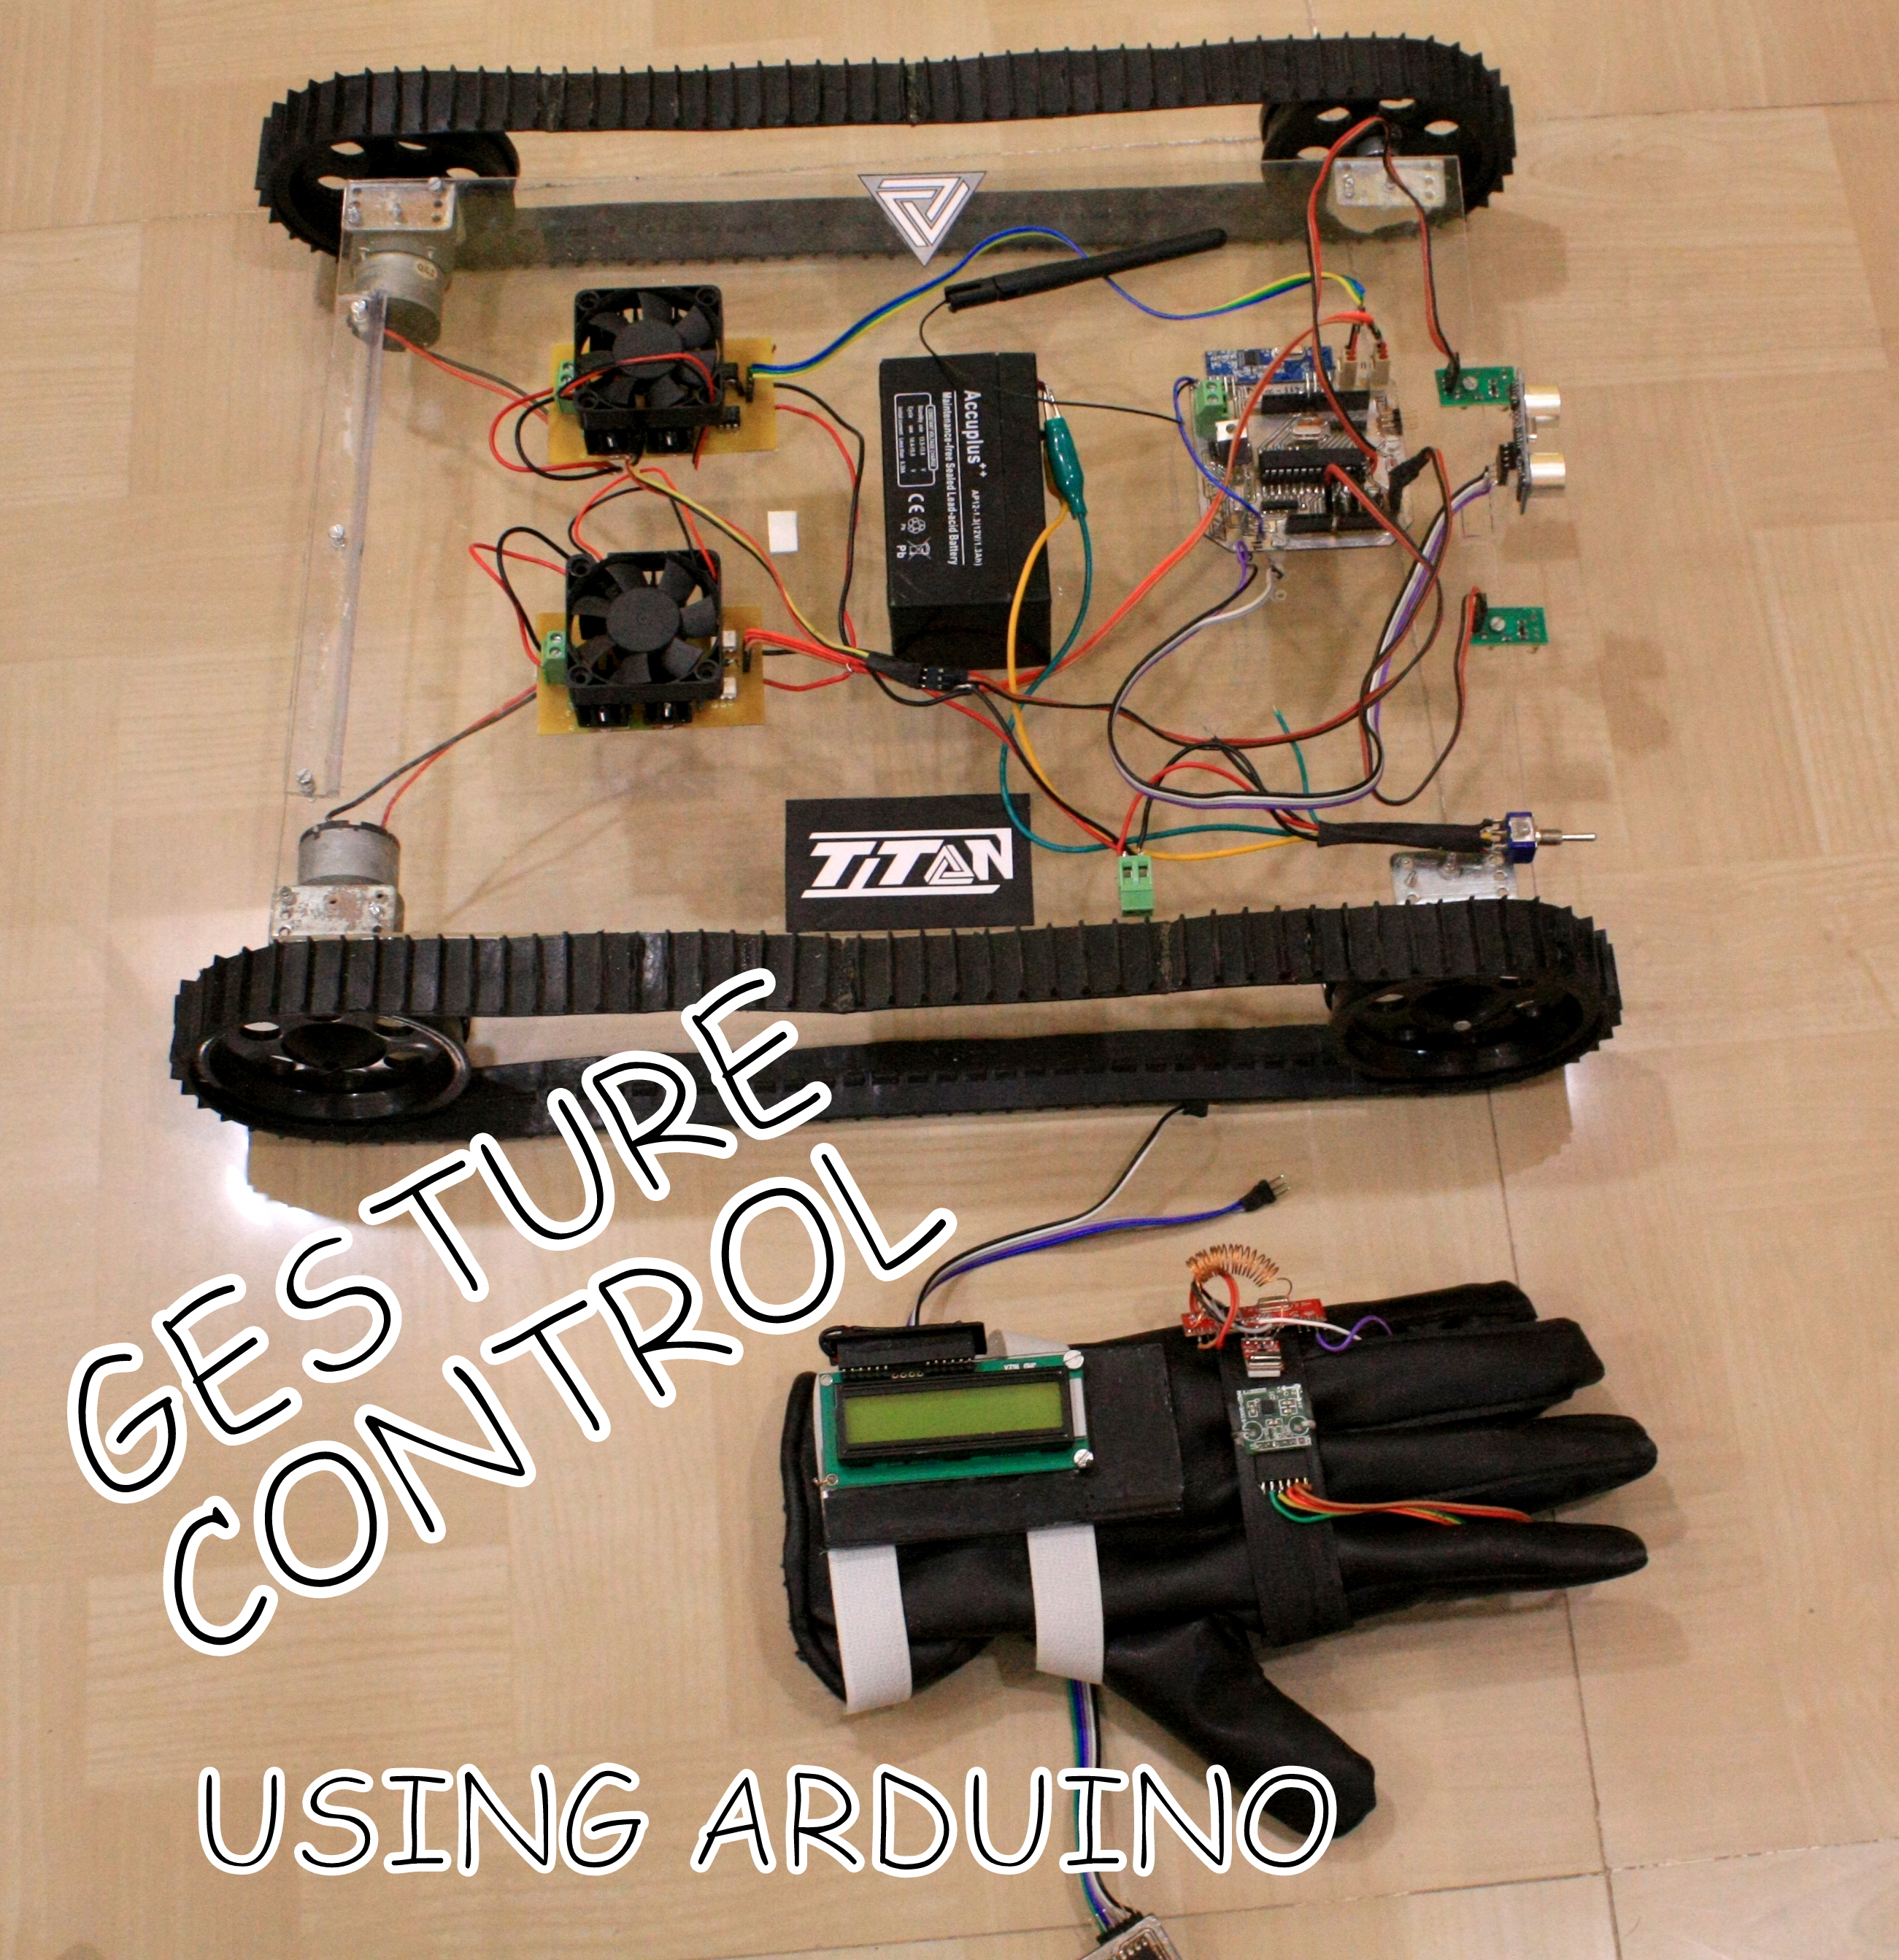 Picture of GESTURE Controlled Arduino Based Rover ( Wireless + Line Following )